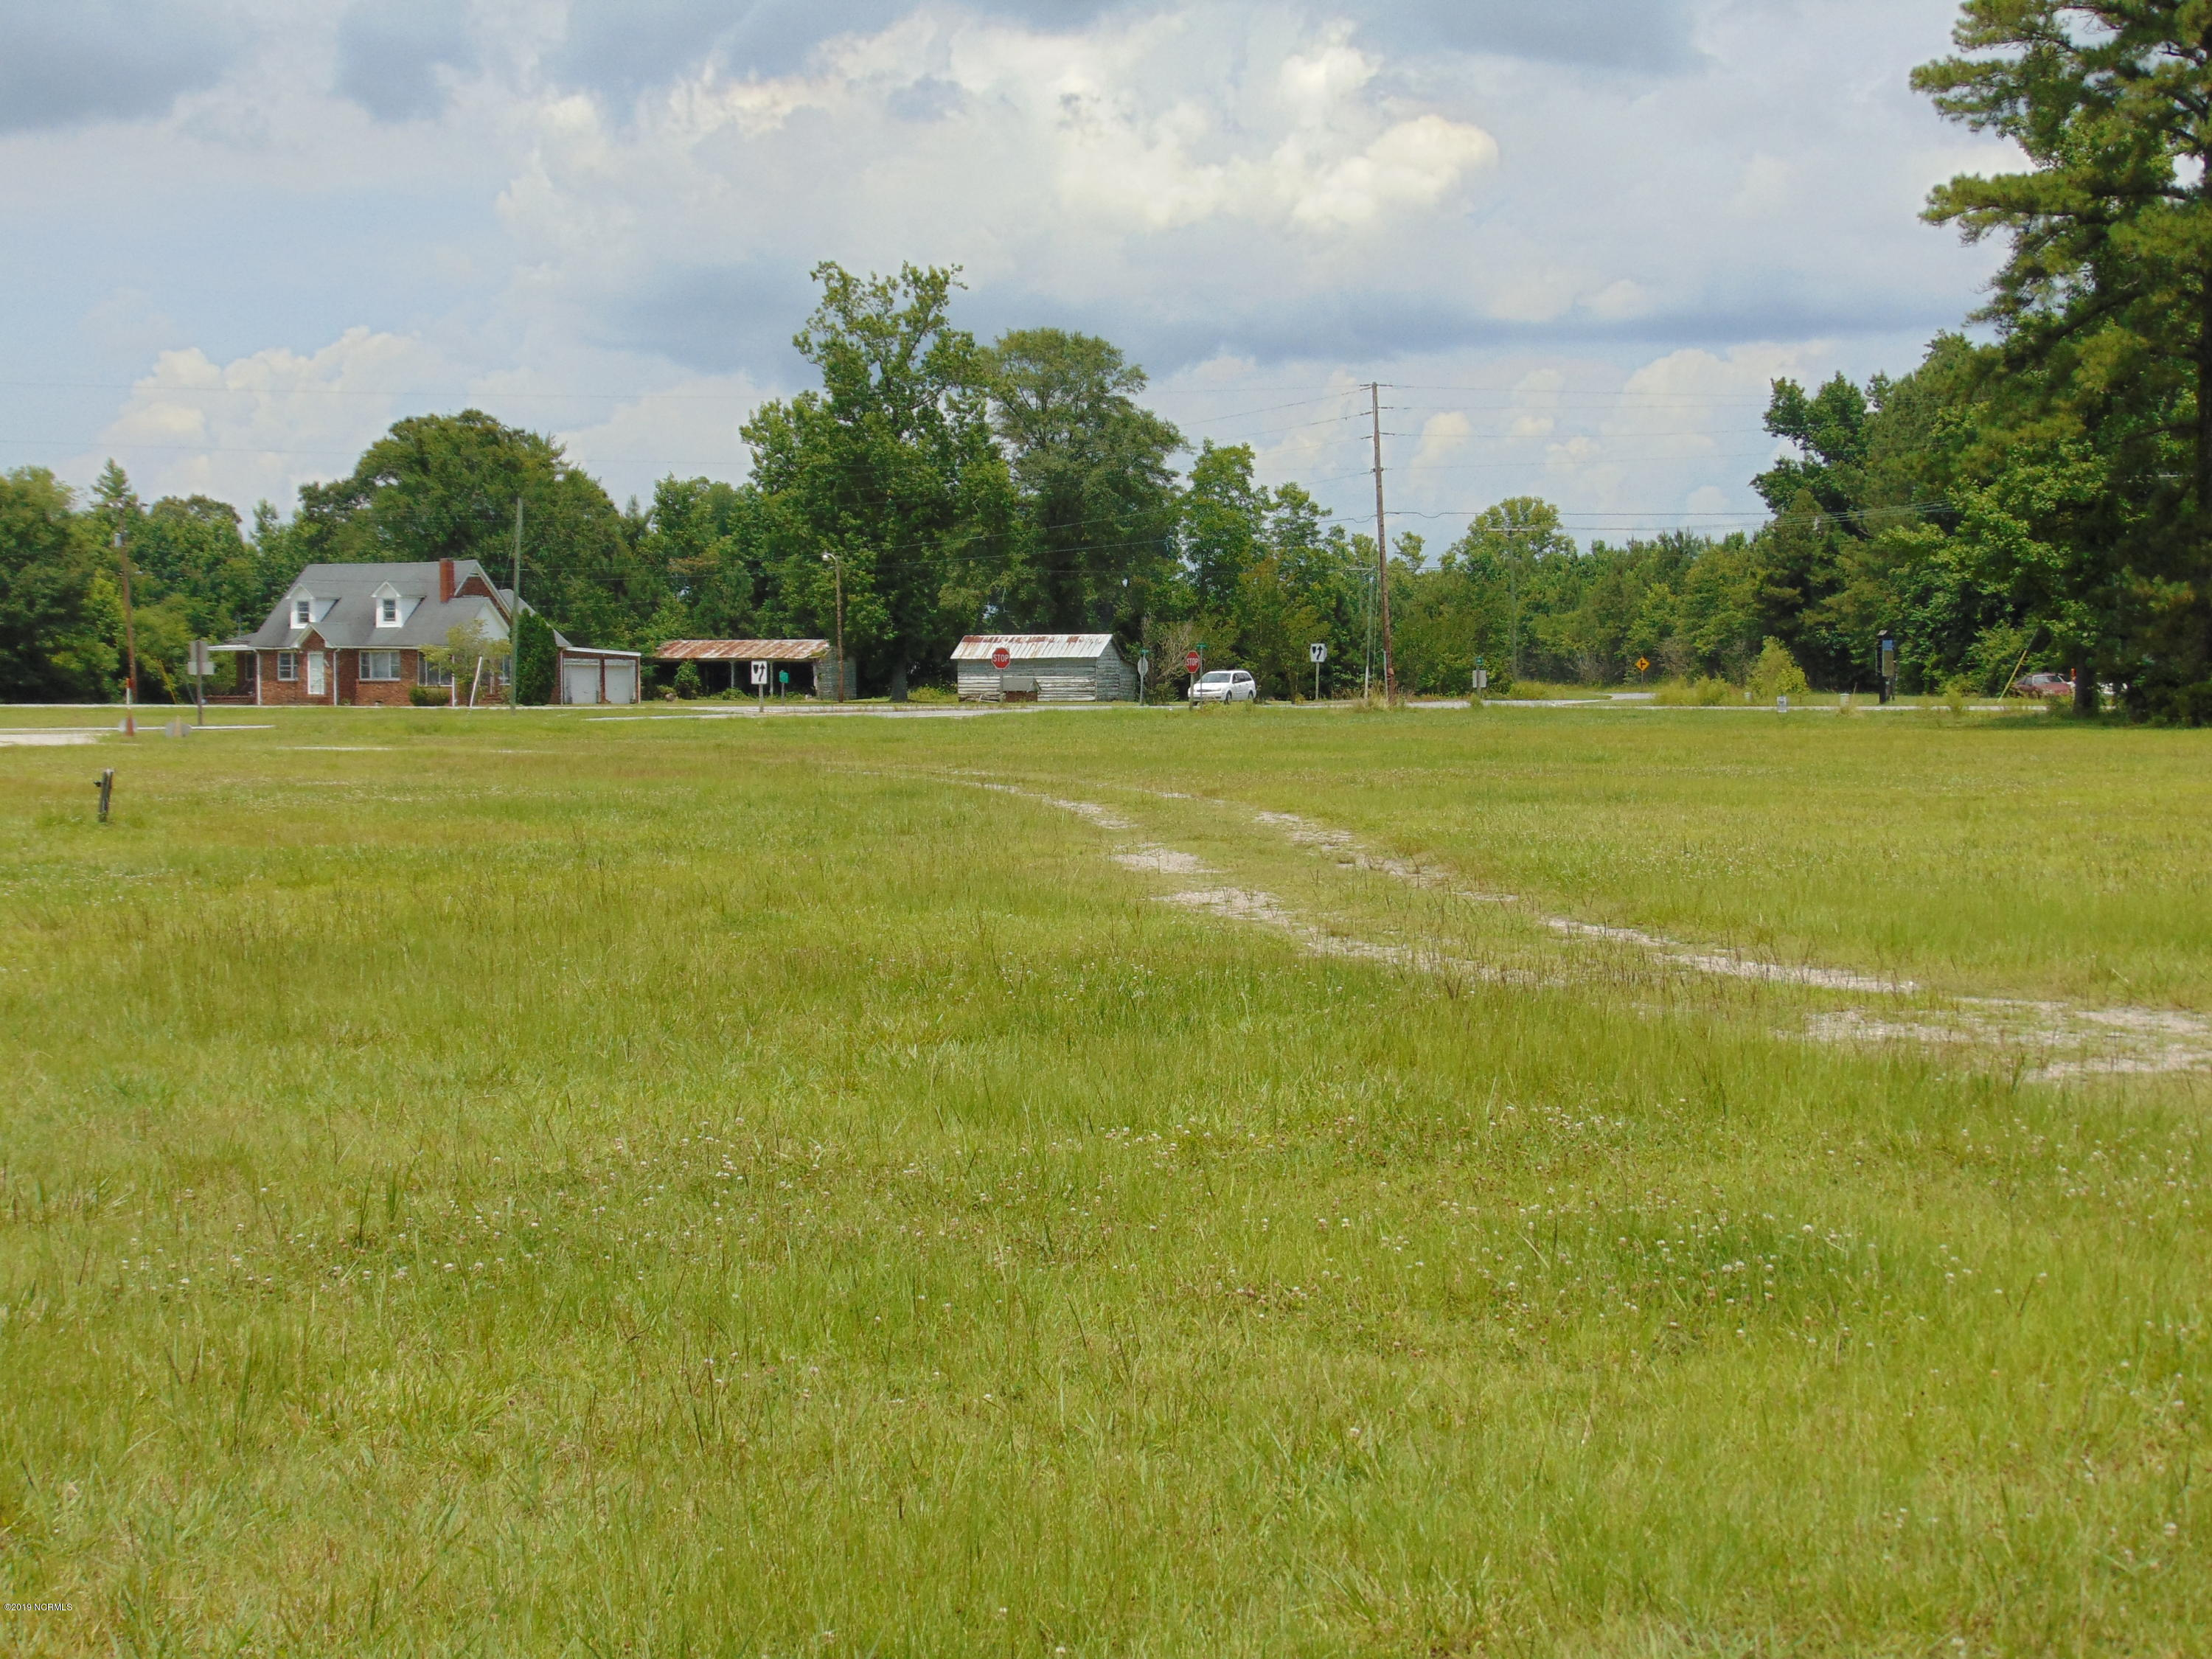 19253 Nc-33, Edward, North Carolina 27821, ,Commercial/industrial,For sale,Nc-33,100179024